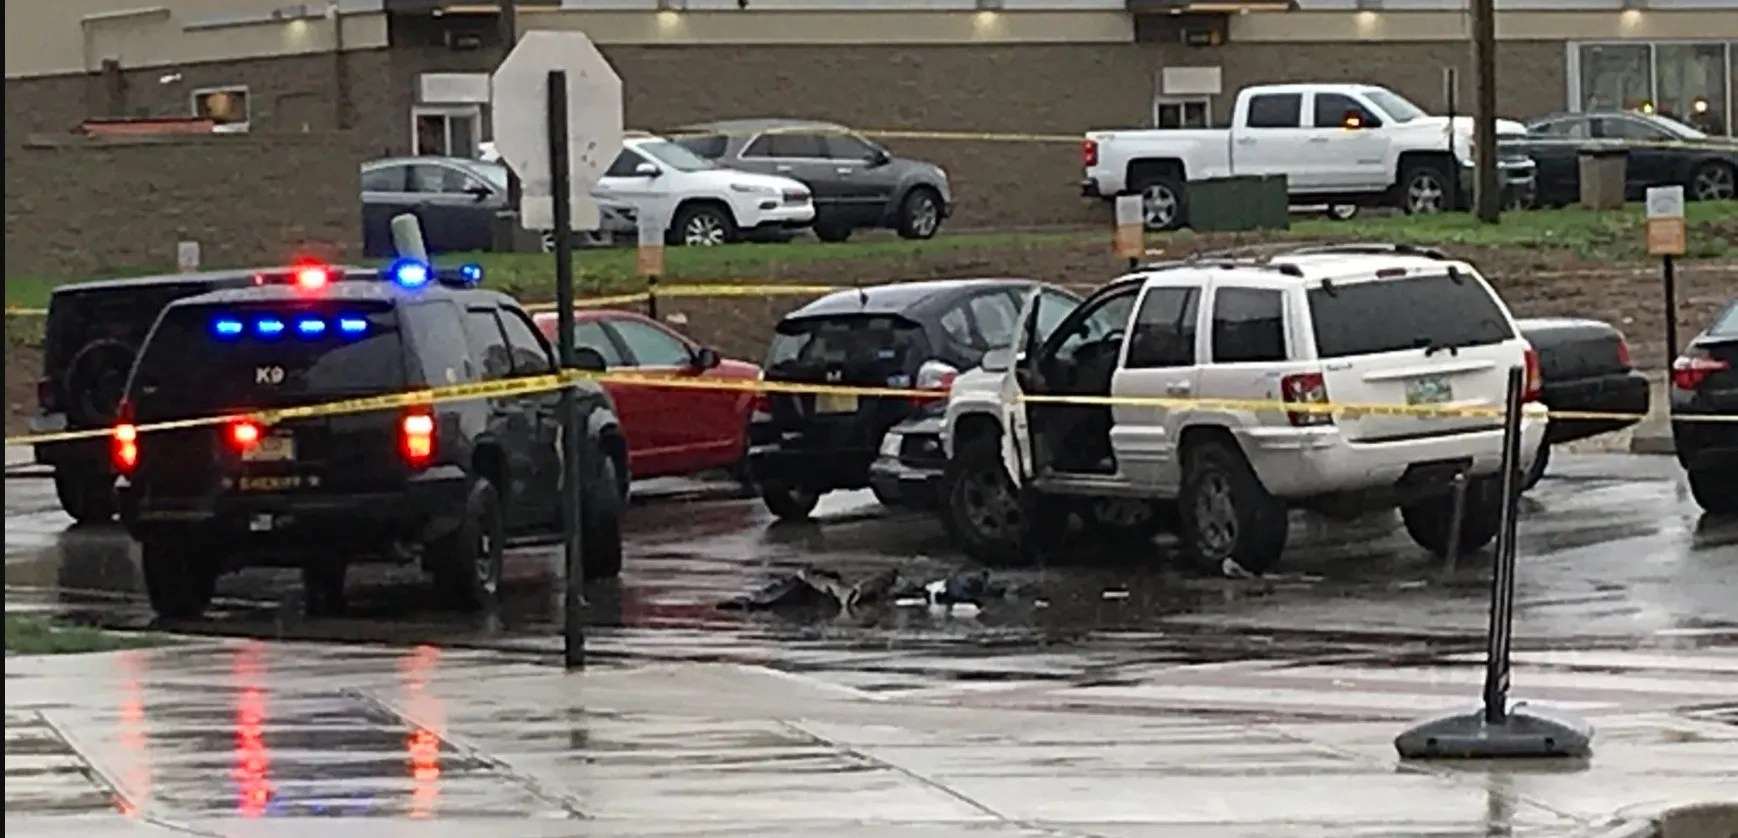 Indianapolis police are investigating a shooting involving a Marion County Sheriff's Office deputy Saturday, April 10, 2021.